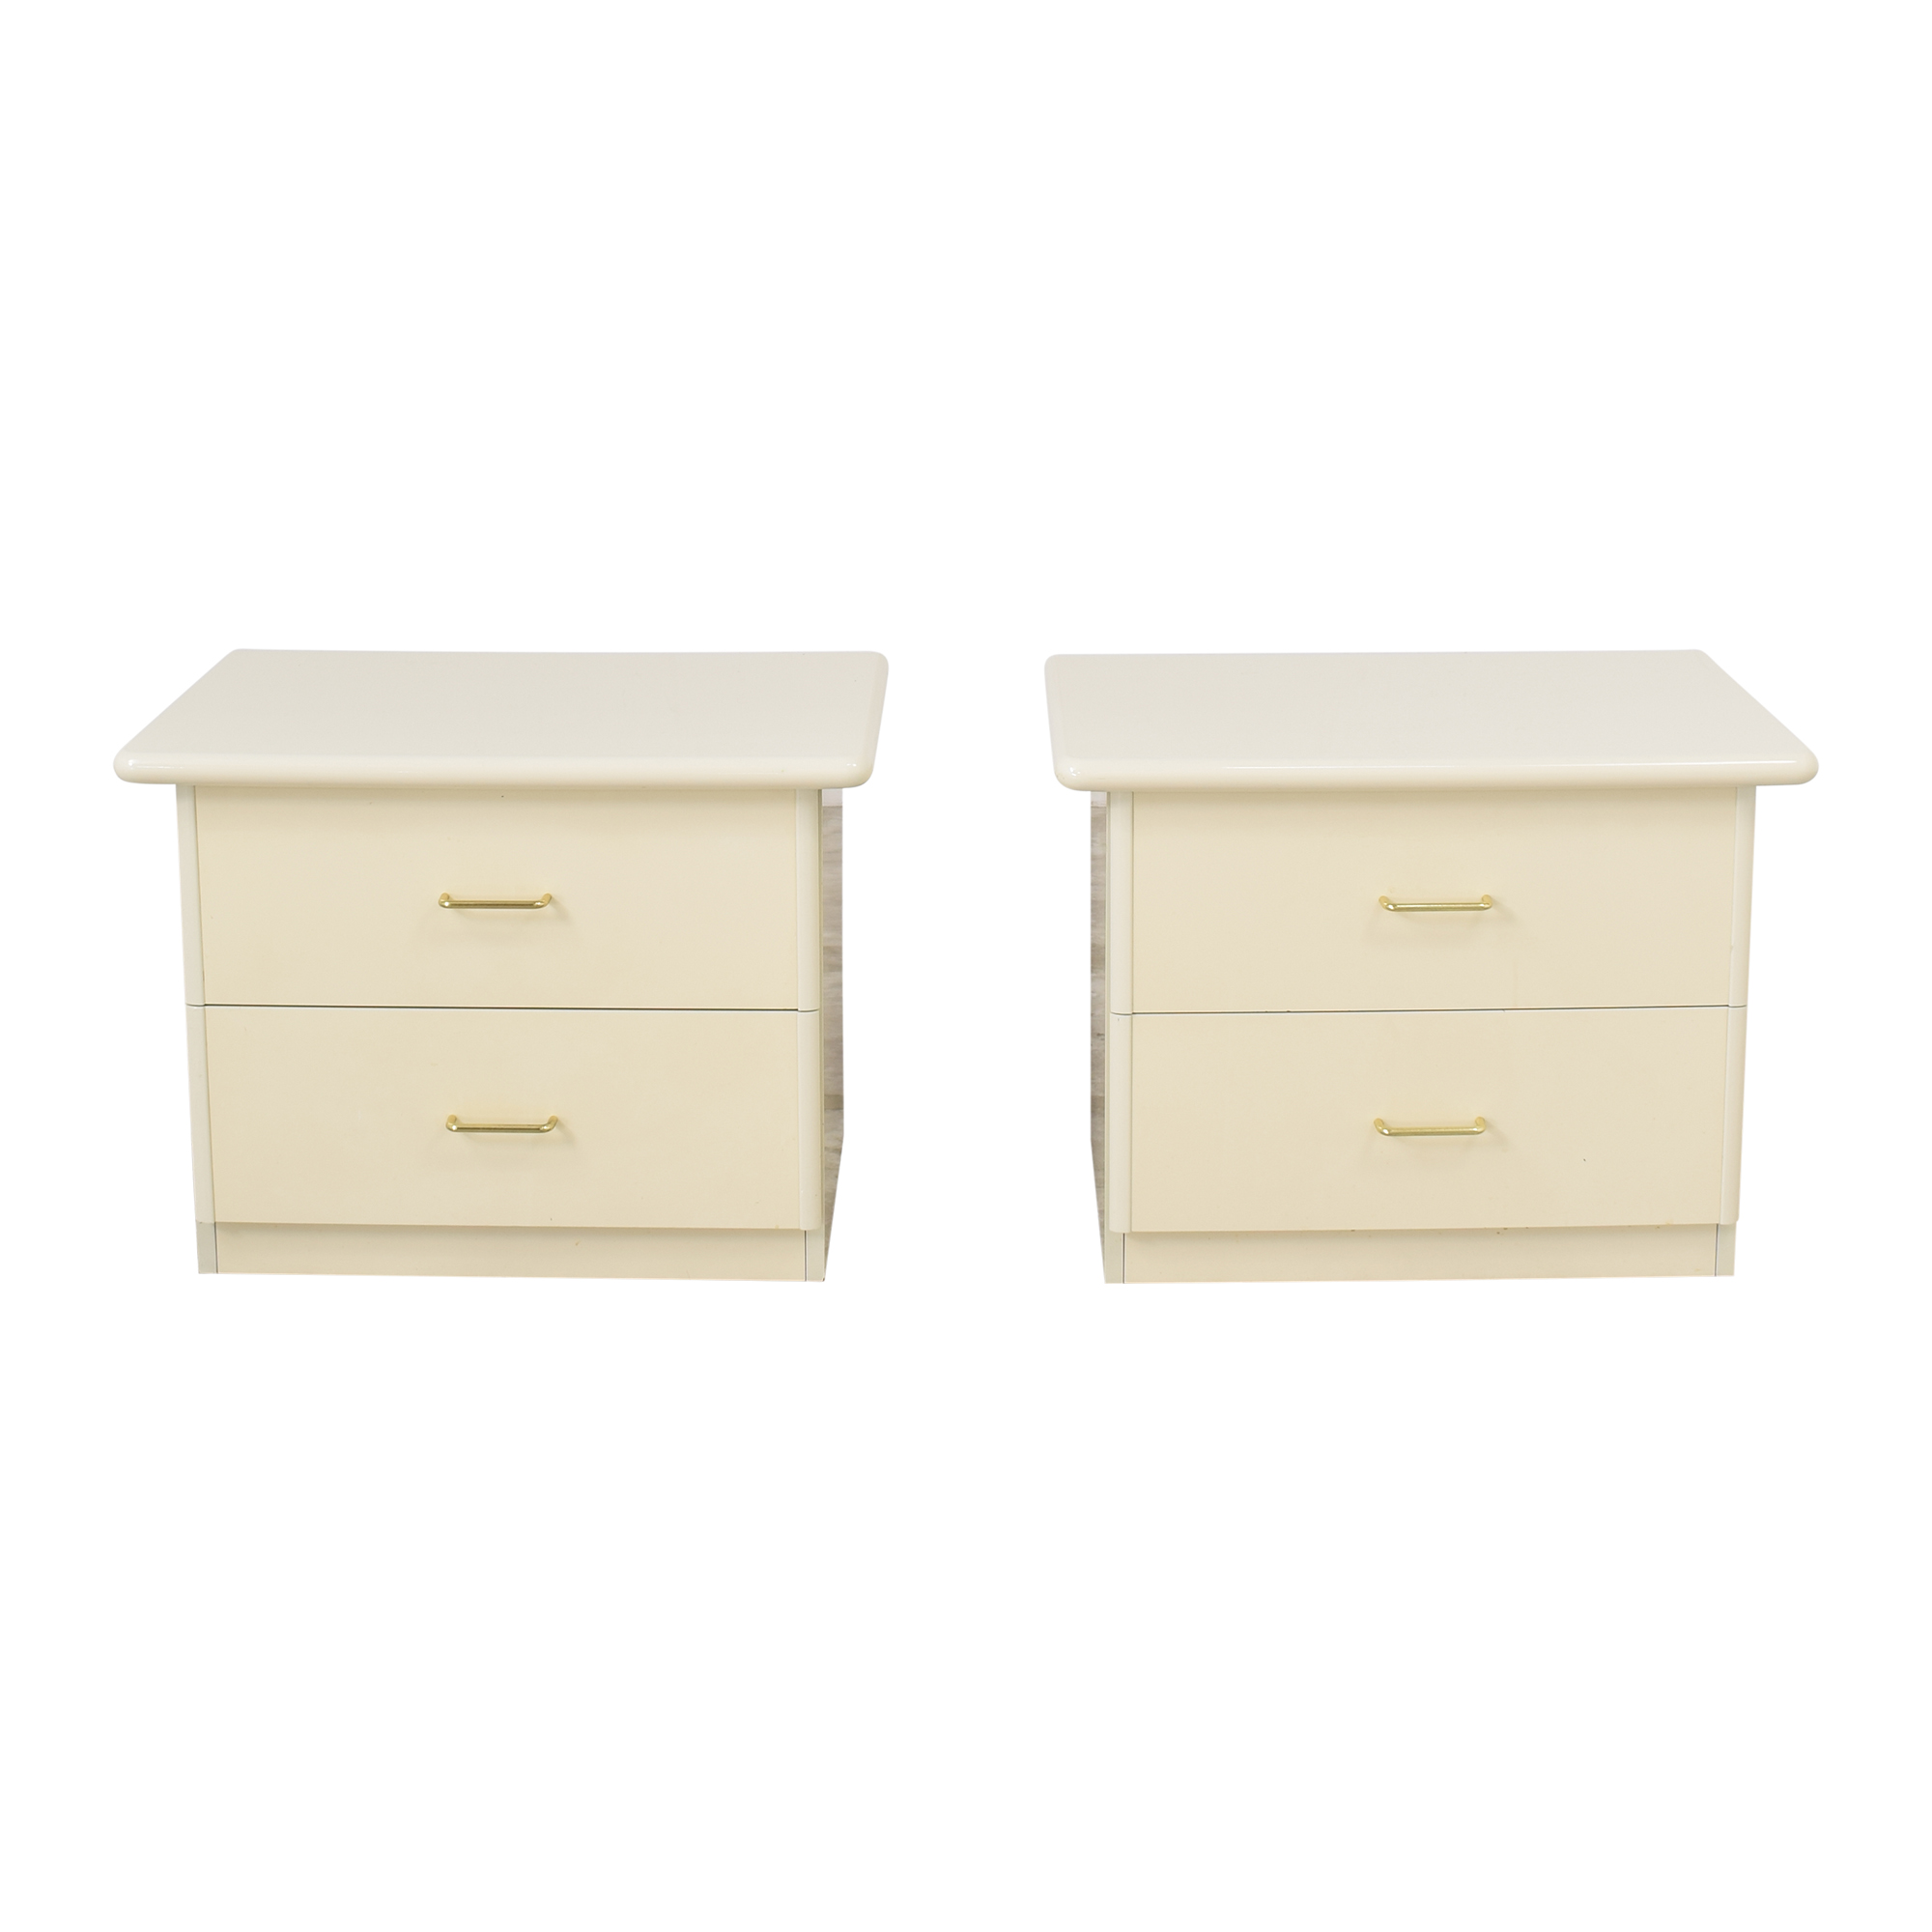 Seamans Seamans Two Drawer Nightstands ma